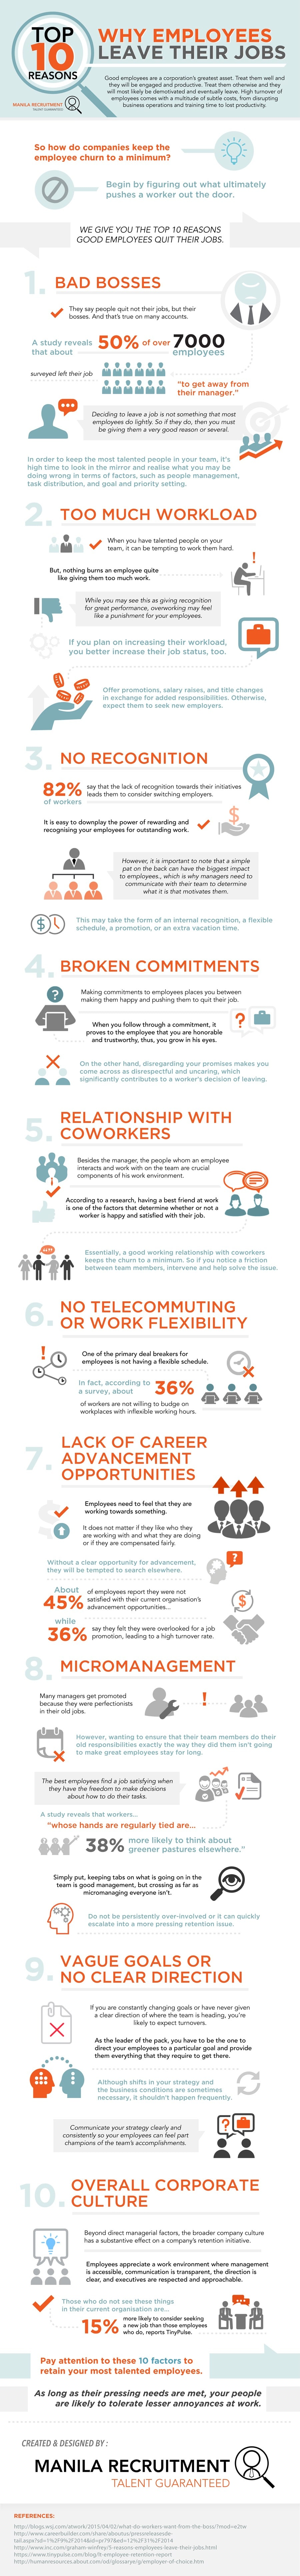 WHY EMPLOYEES QUIT THEIR JOBS